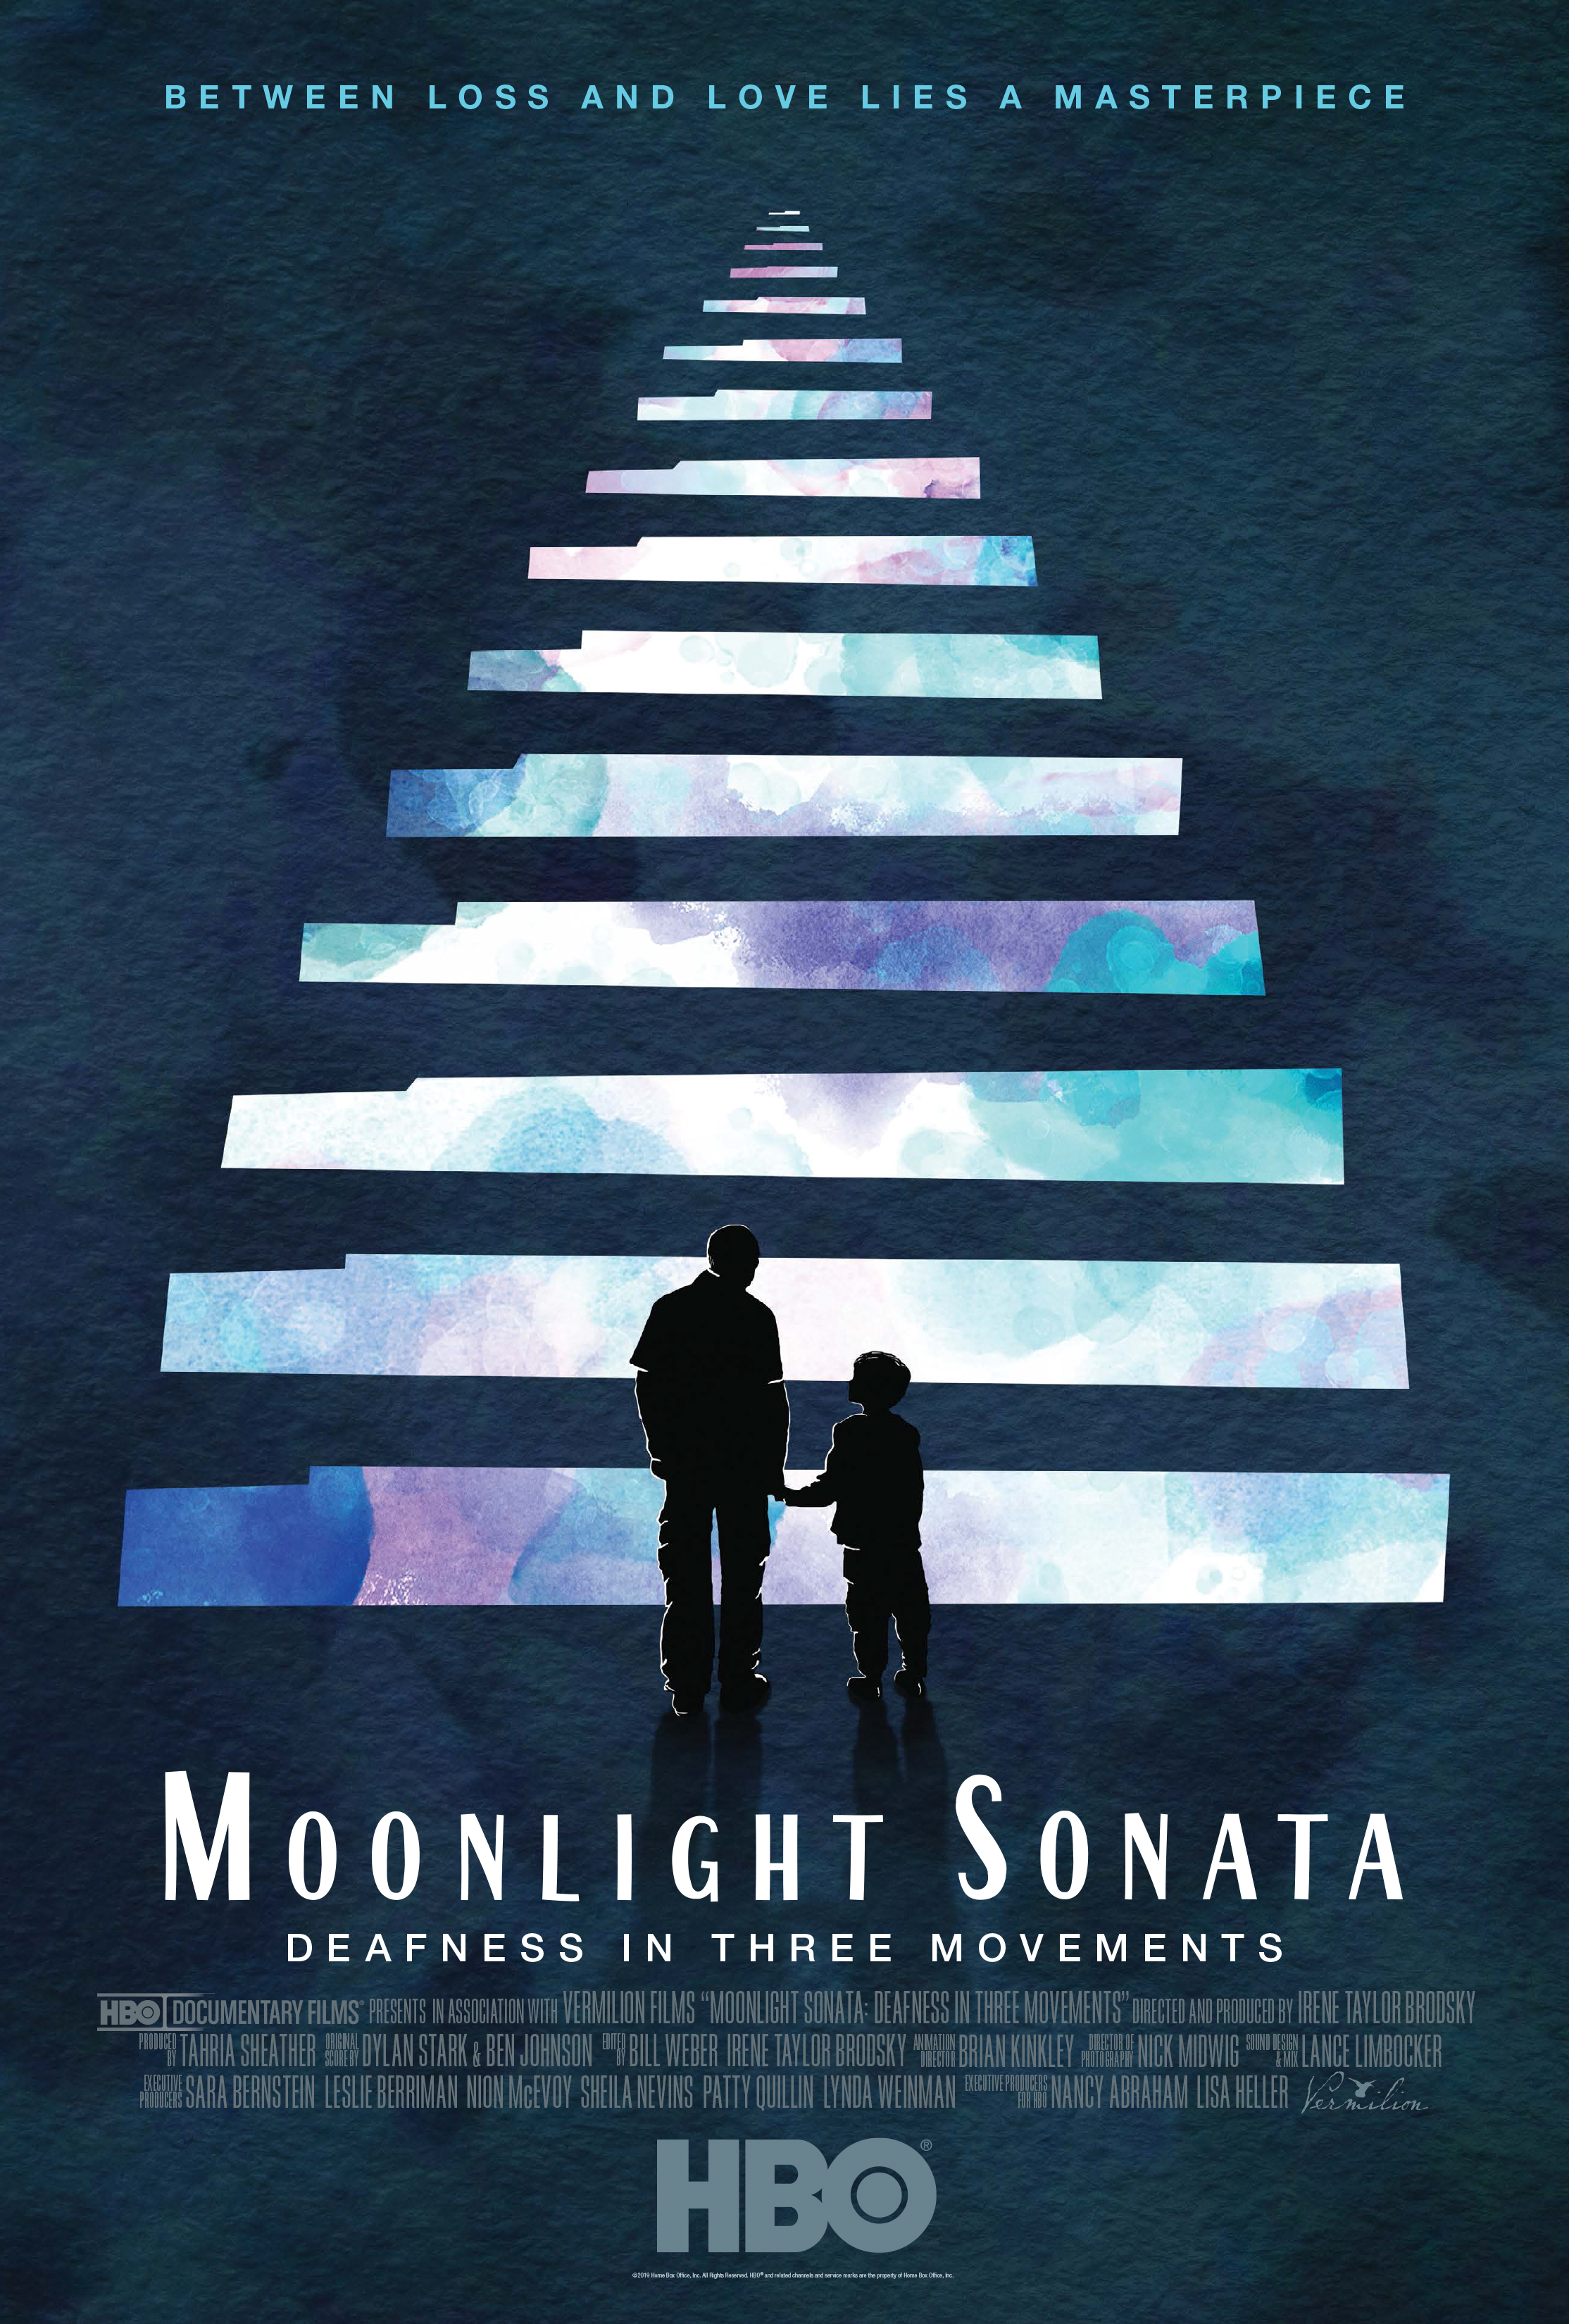 Moonlight Sonata poster